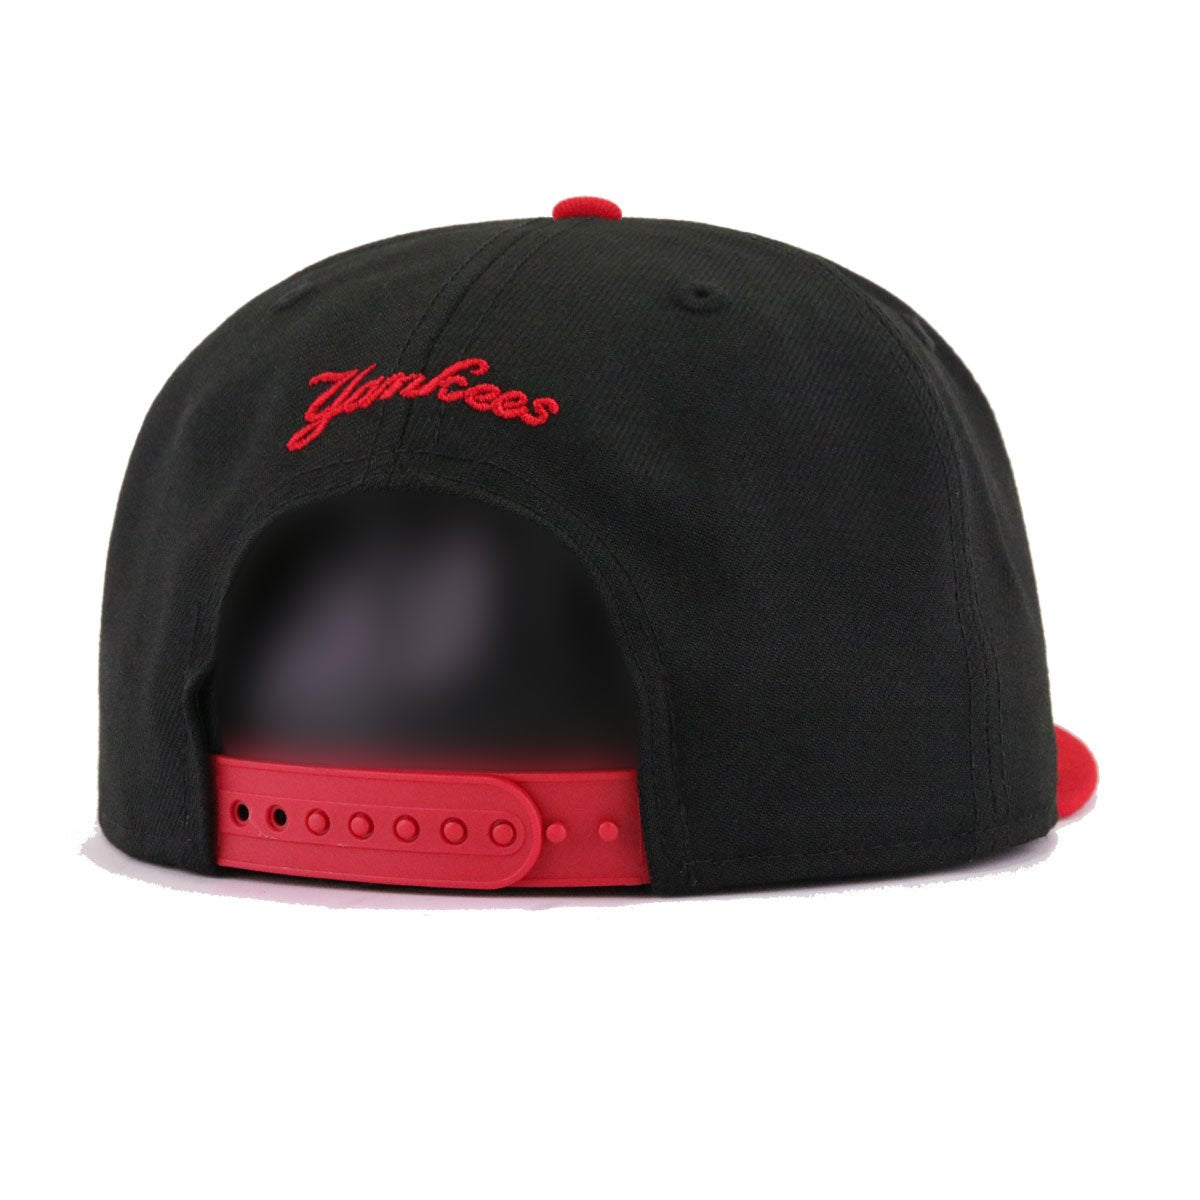 New York Yankees Black Scarlet 2 Tone New Era 9Fifty Snapback